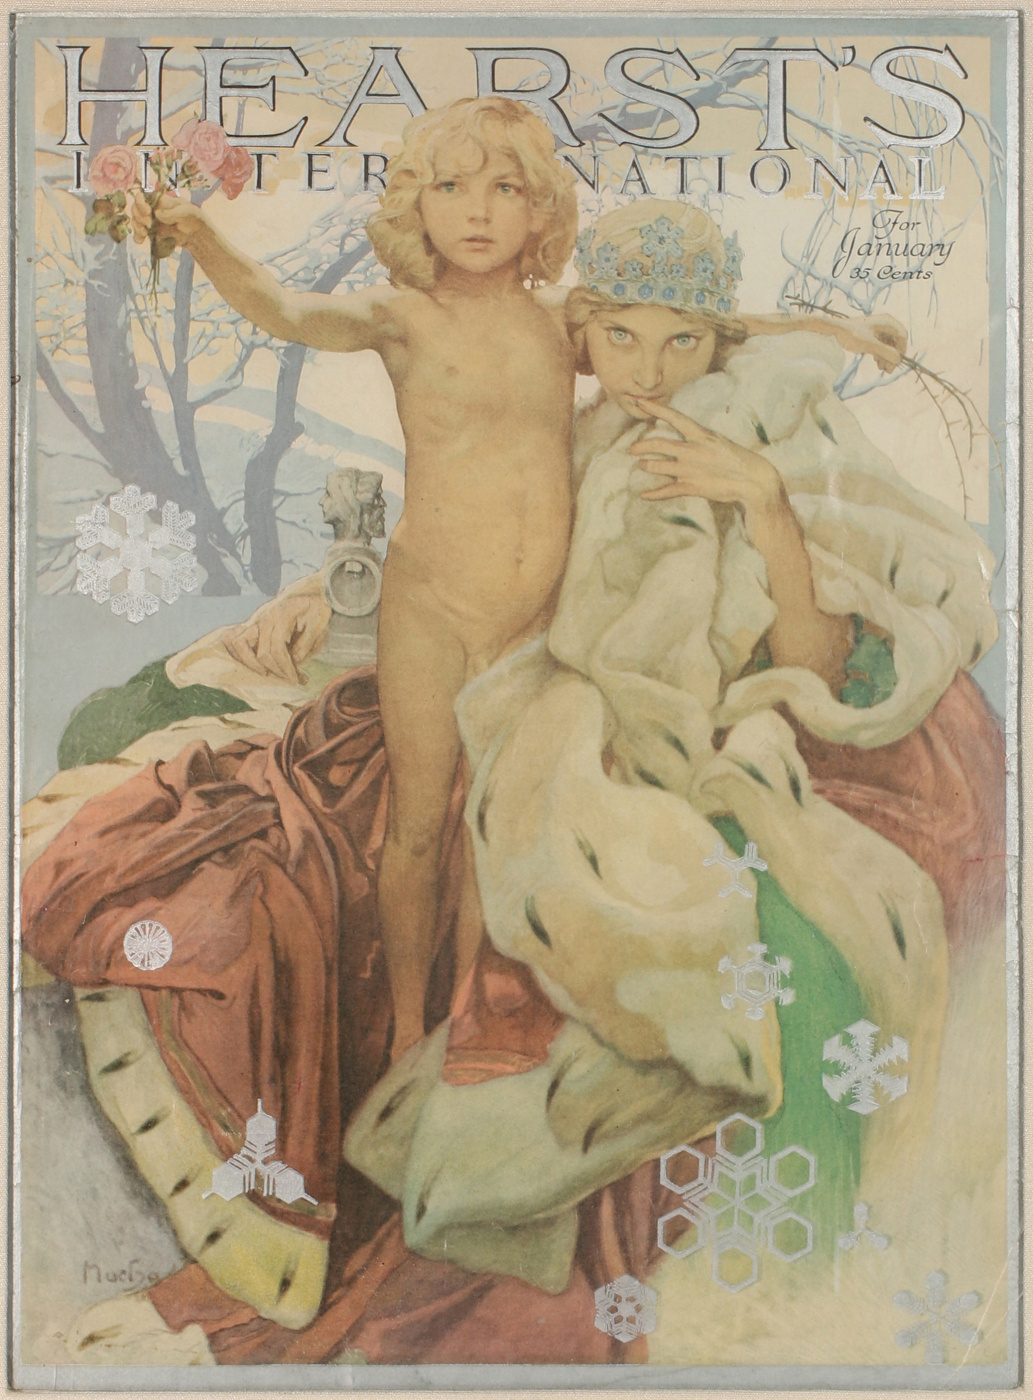 Alphonse Mucha. The cover of the January issue of Hurst International